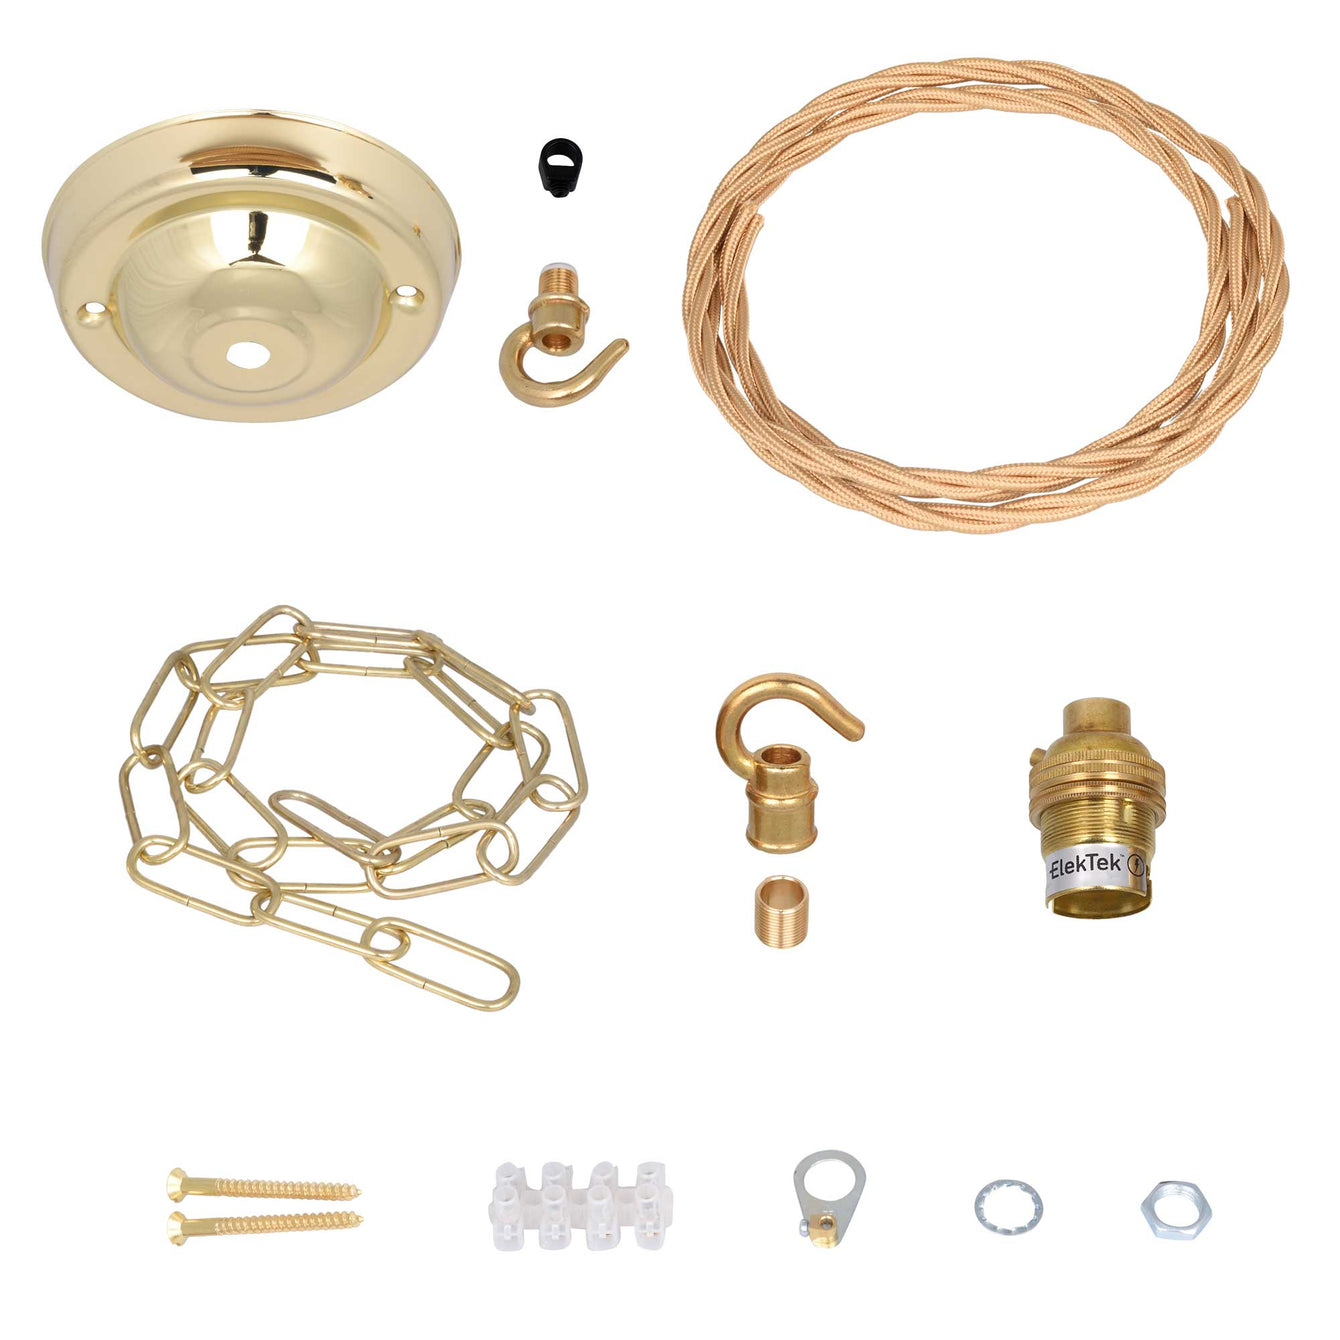 ElekTek Premium Pendant Light Kit DIY 108mm Ceiling Rose, Chain, Twisted Flex and Lamp Holder B22 Hook - Buy It Better Brushed Antique